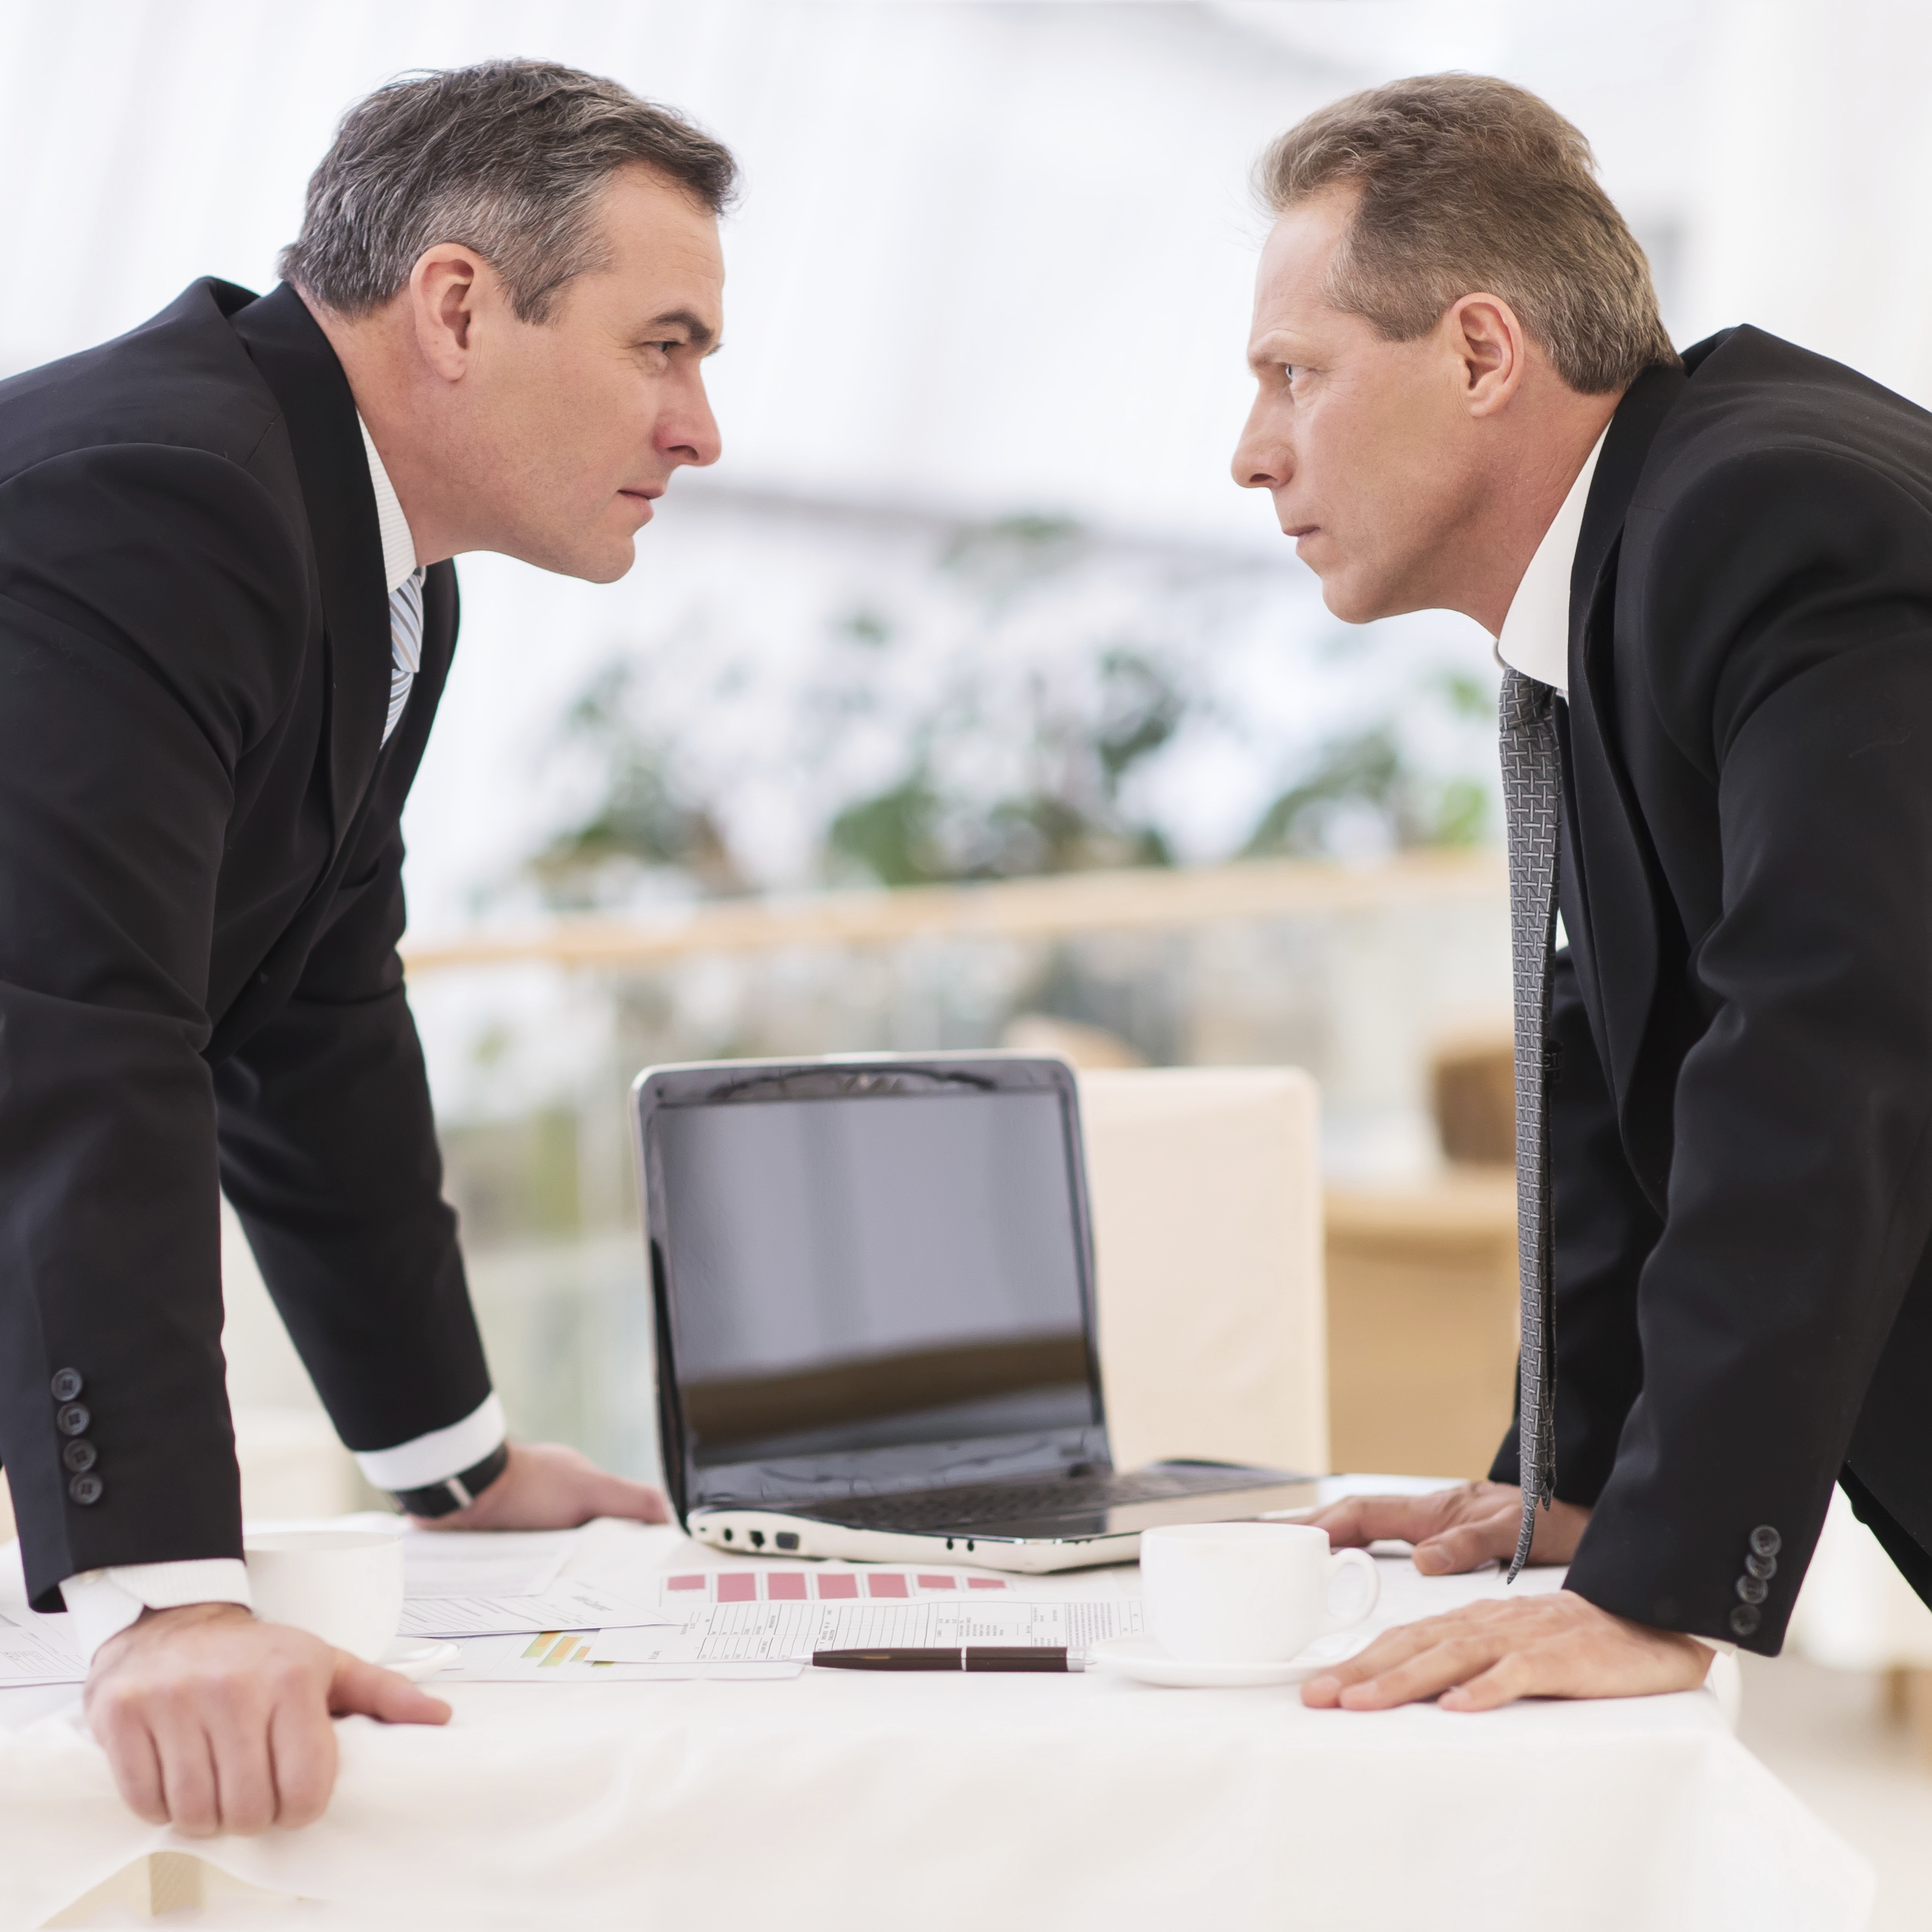 Business confrontation. Two mature men in formalwear conflicting while standing face to face